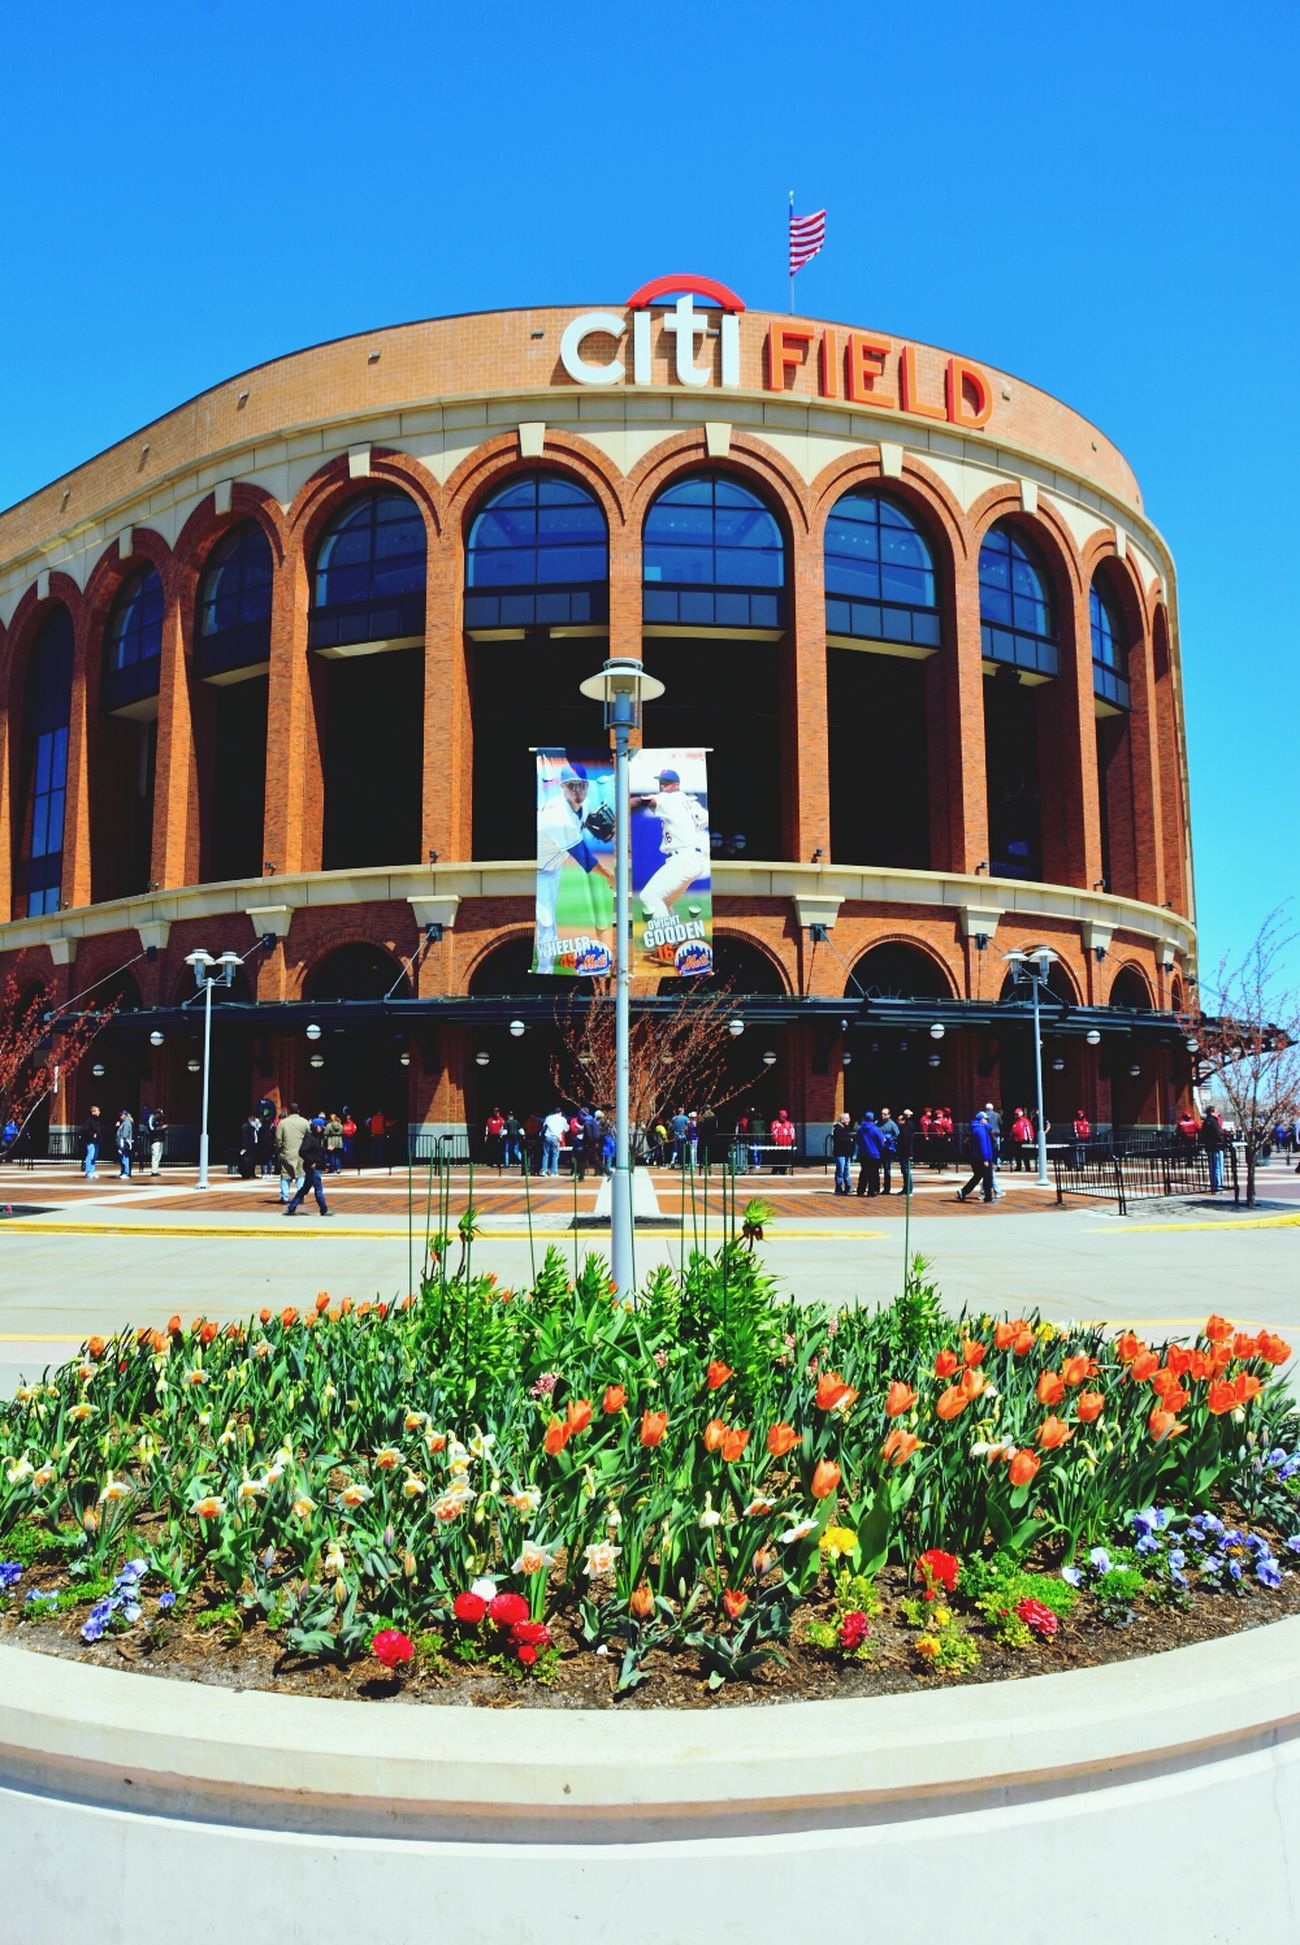 Mets v. Cardinals - a great day for afternoon baseball.... Baseball Eye4photography  New York Citifield